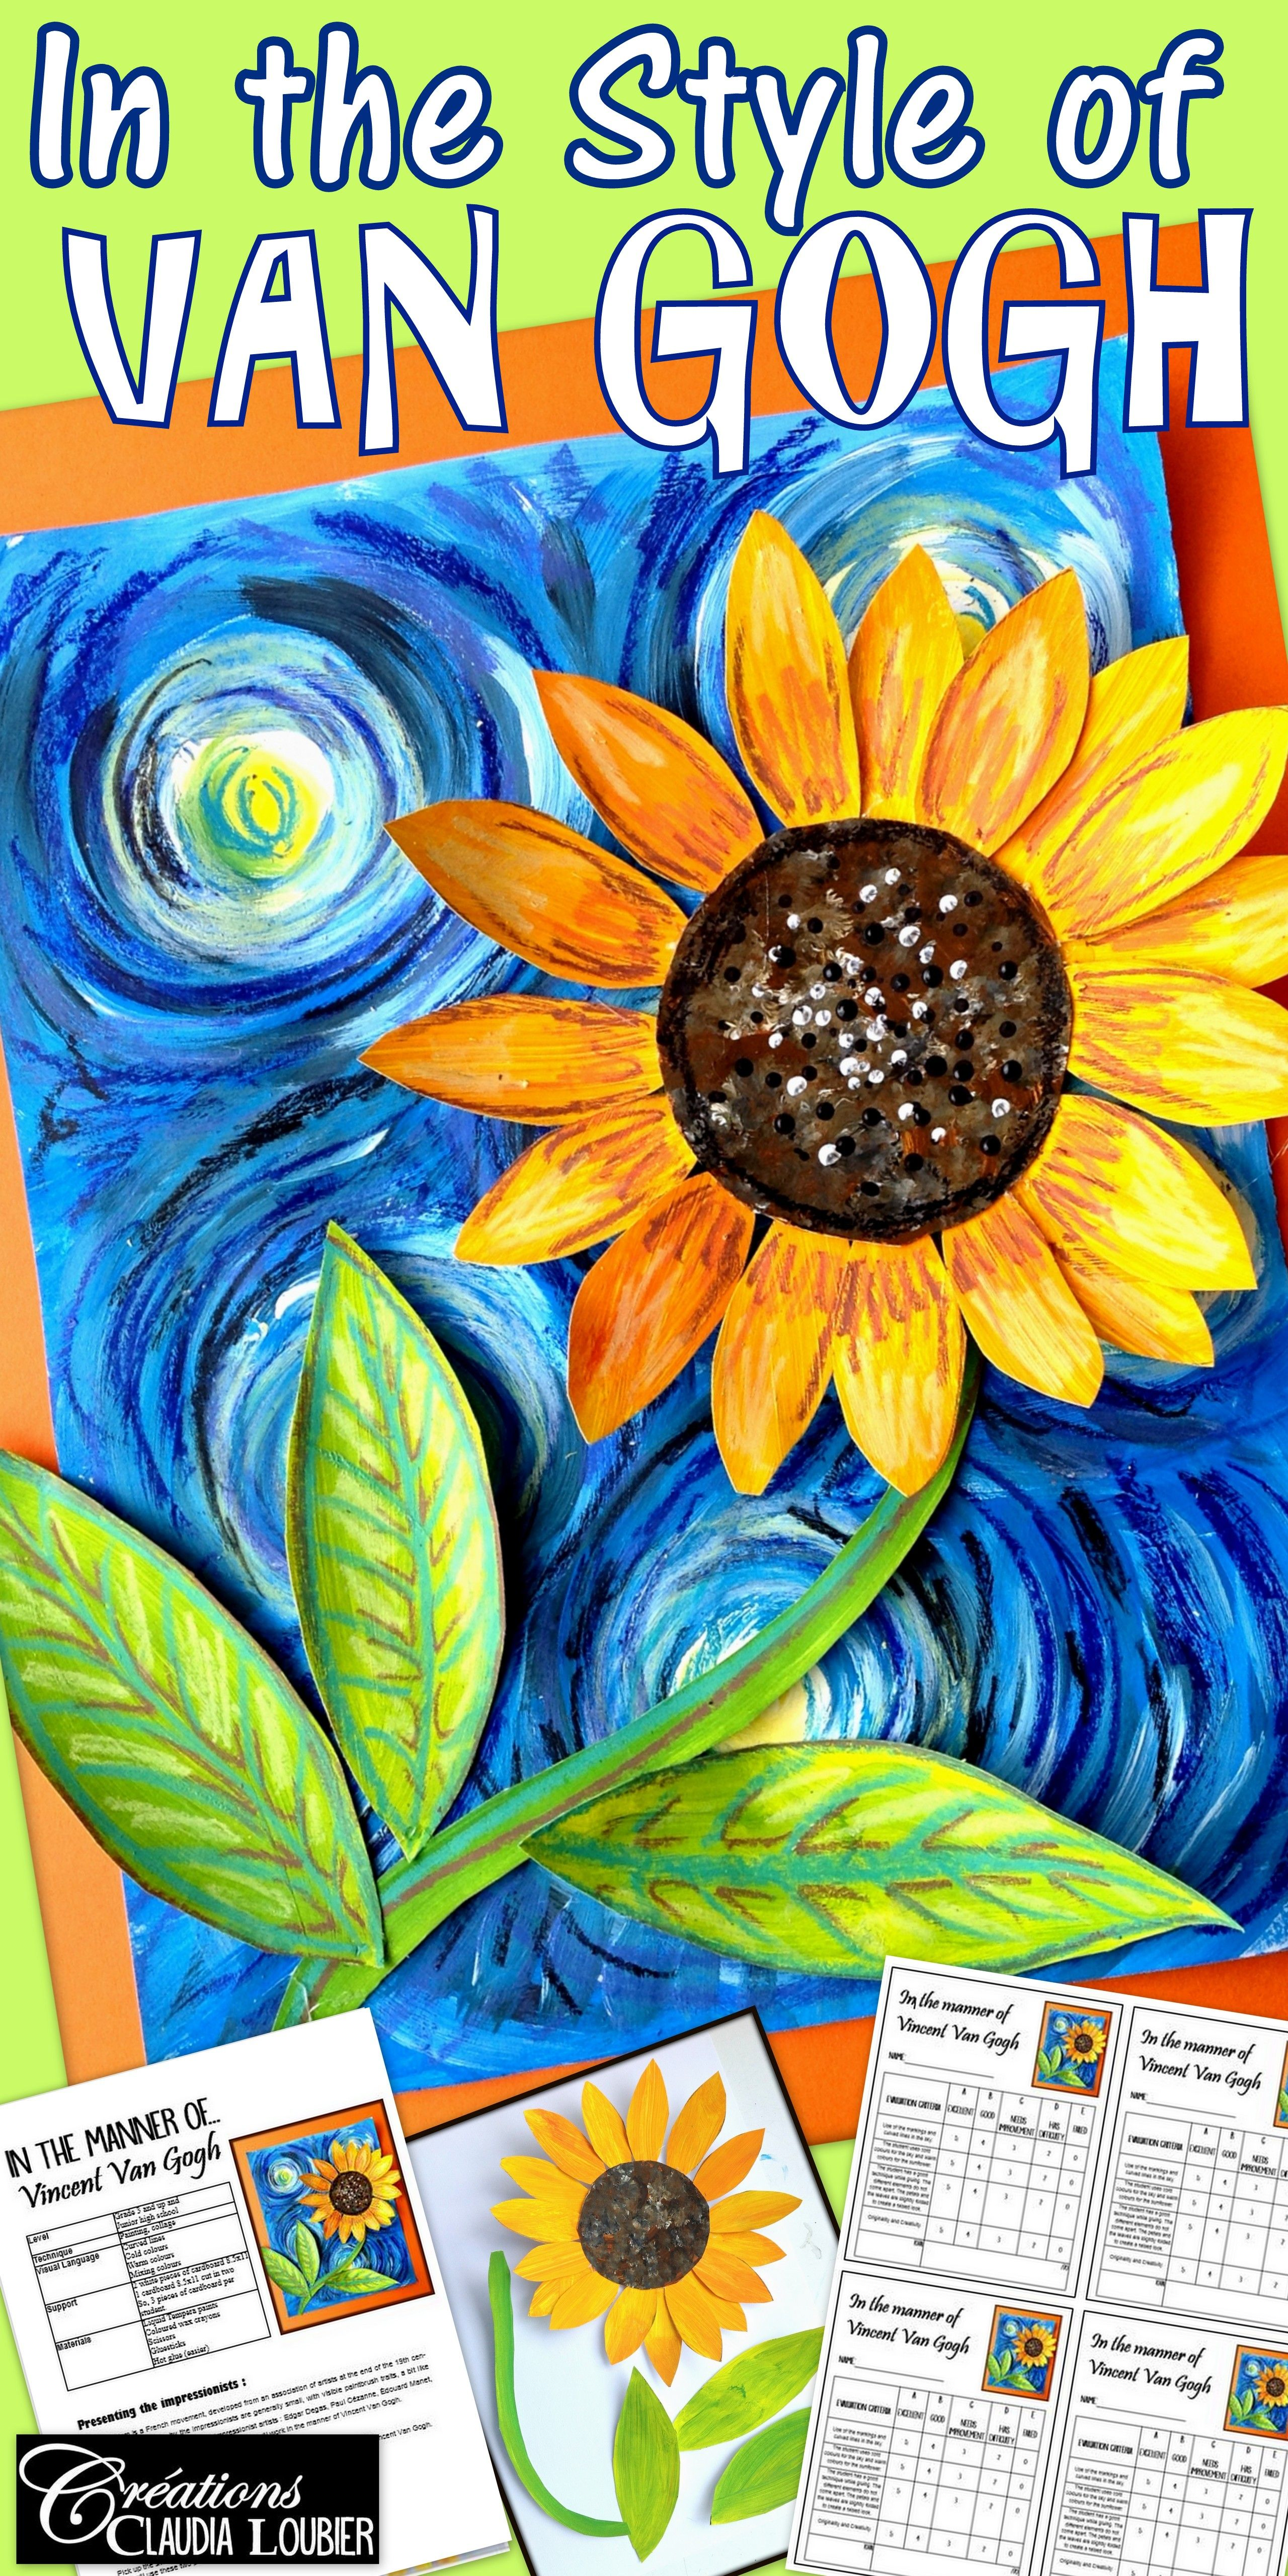 In The Style Of Vincent Van Gogh Spring Art Lesson For Kids Impressionnist